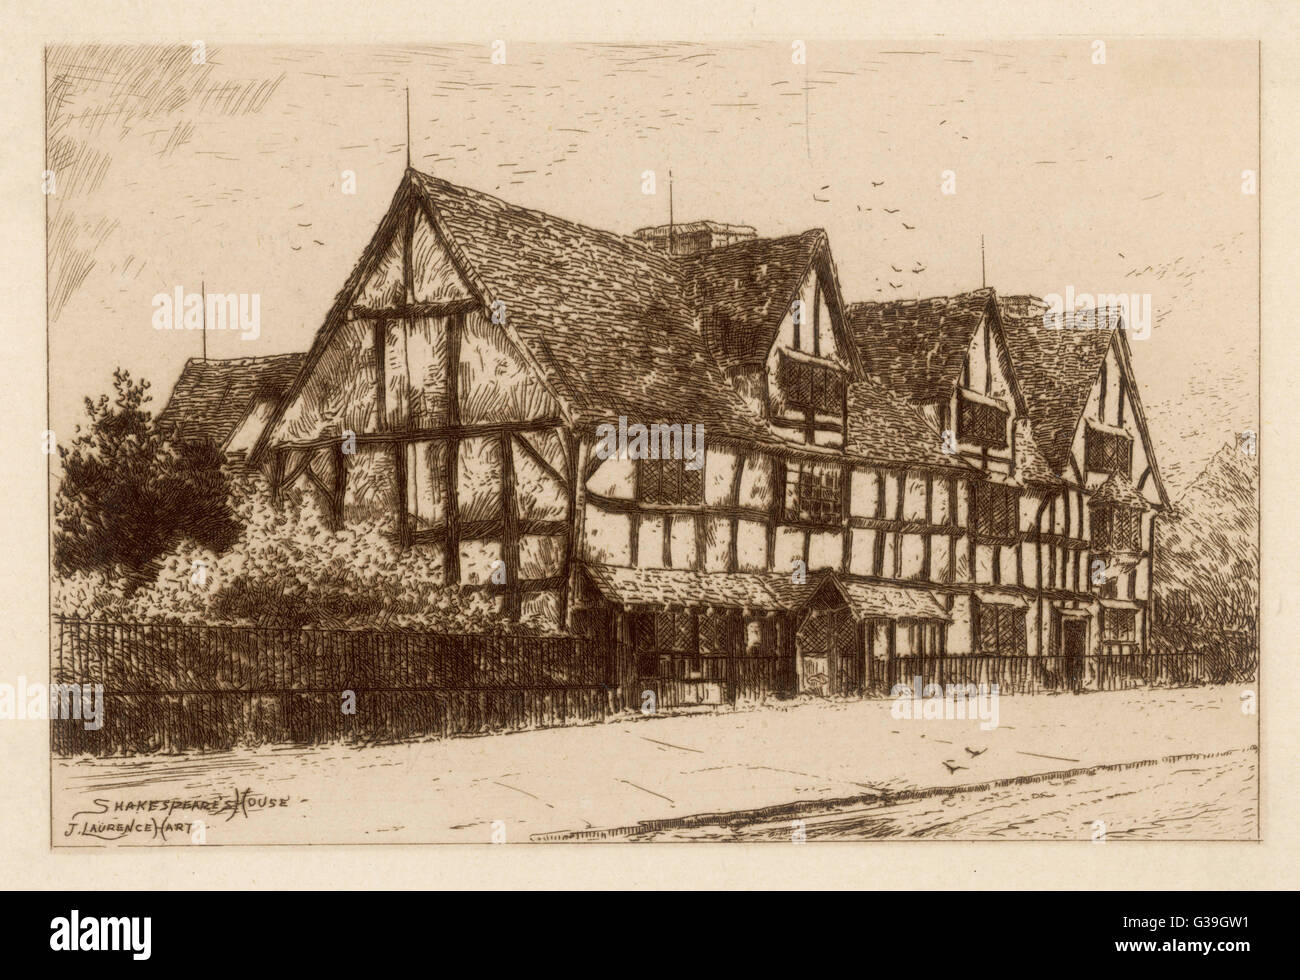 WILLIAM SHAKESPEARE His Stratford-upon-Avon birthplace Date: 1564 - 1616